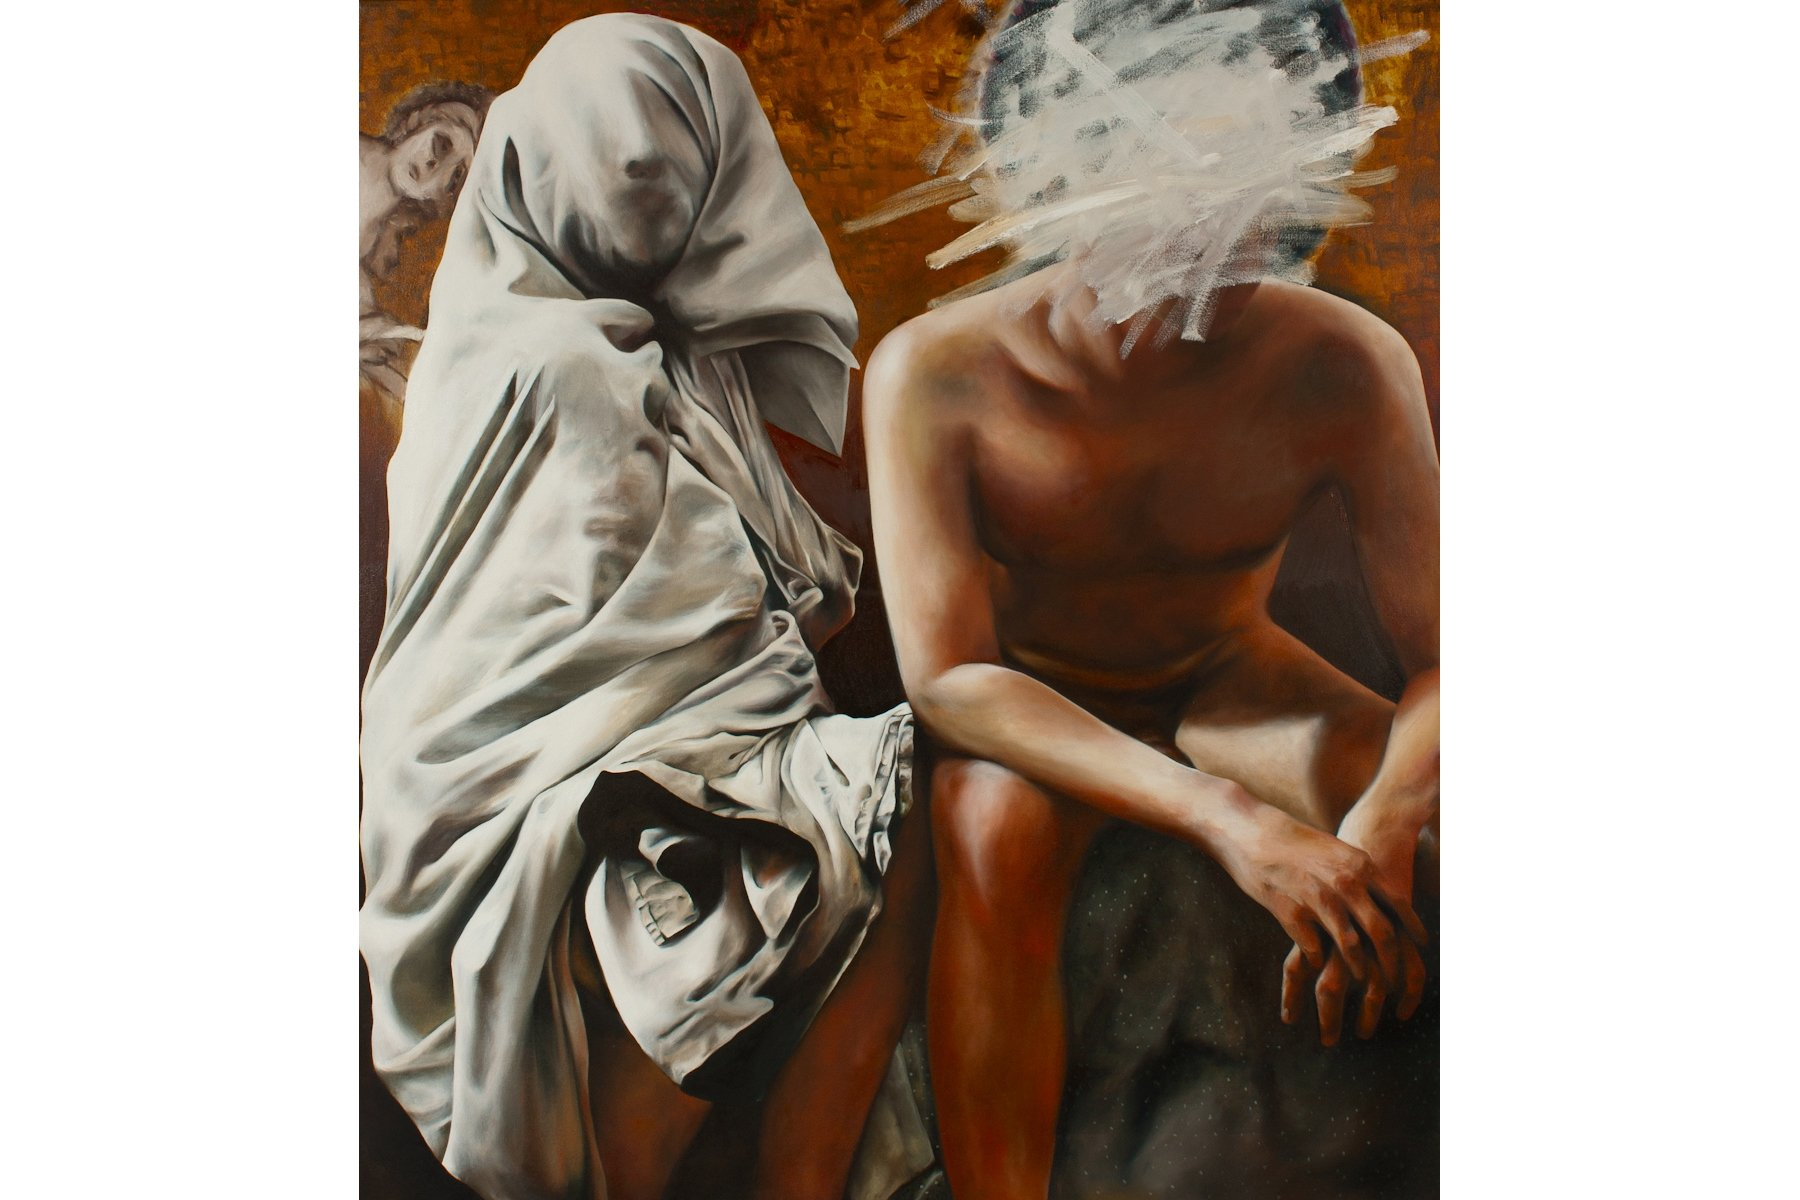 """Enveloped, or How I Felt with You"" by Julia Haw, 40"" x 36"" Oil on Canvas, 2007-2012, Mud Season Review"